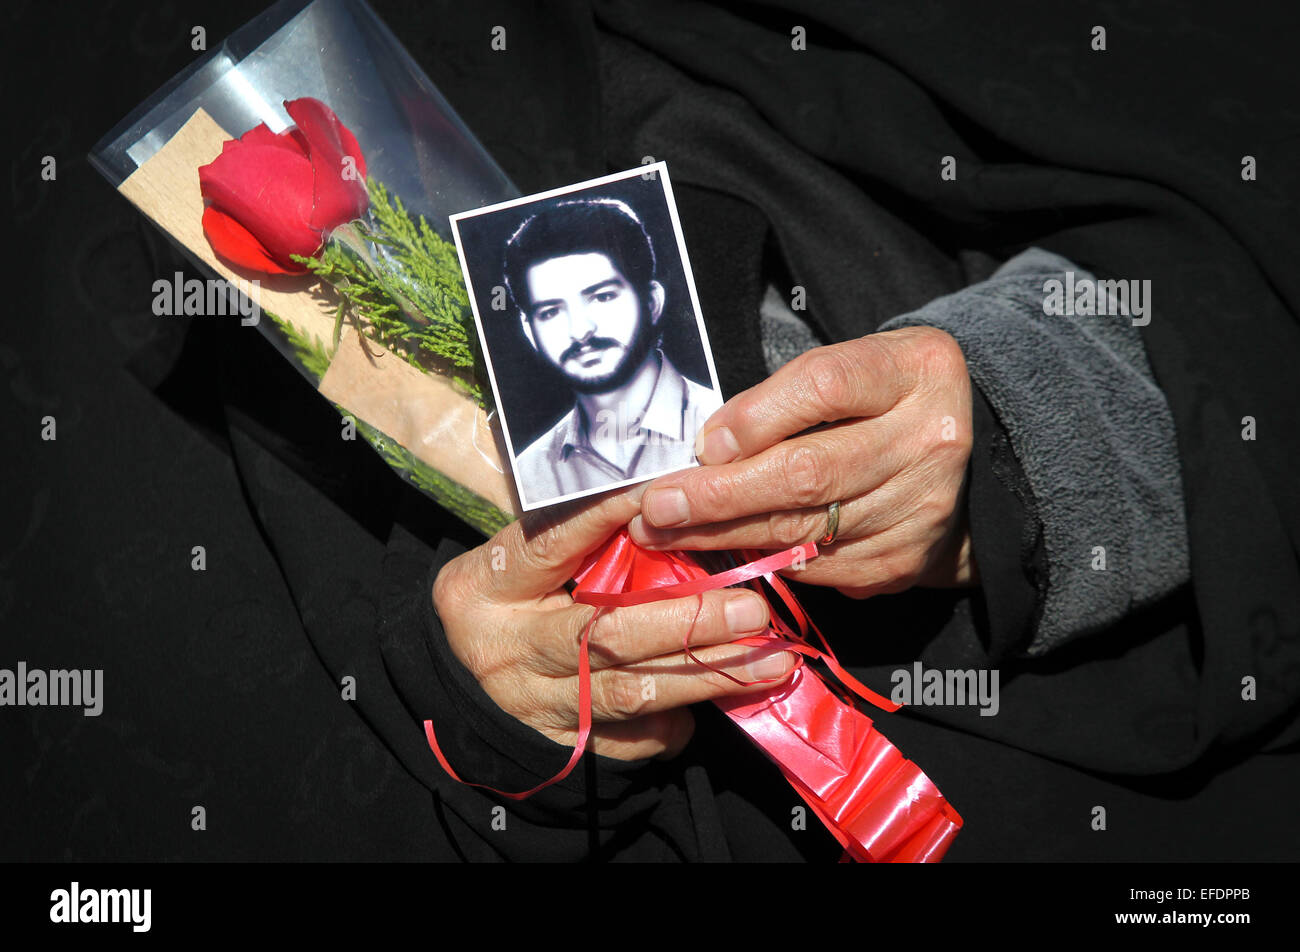 Tehran. 1st Feb, 2015. An Iranian woman holds a picture of her son who was killed during the 1979 Islamic revolution - Stock Image